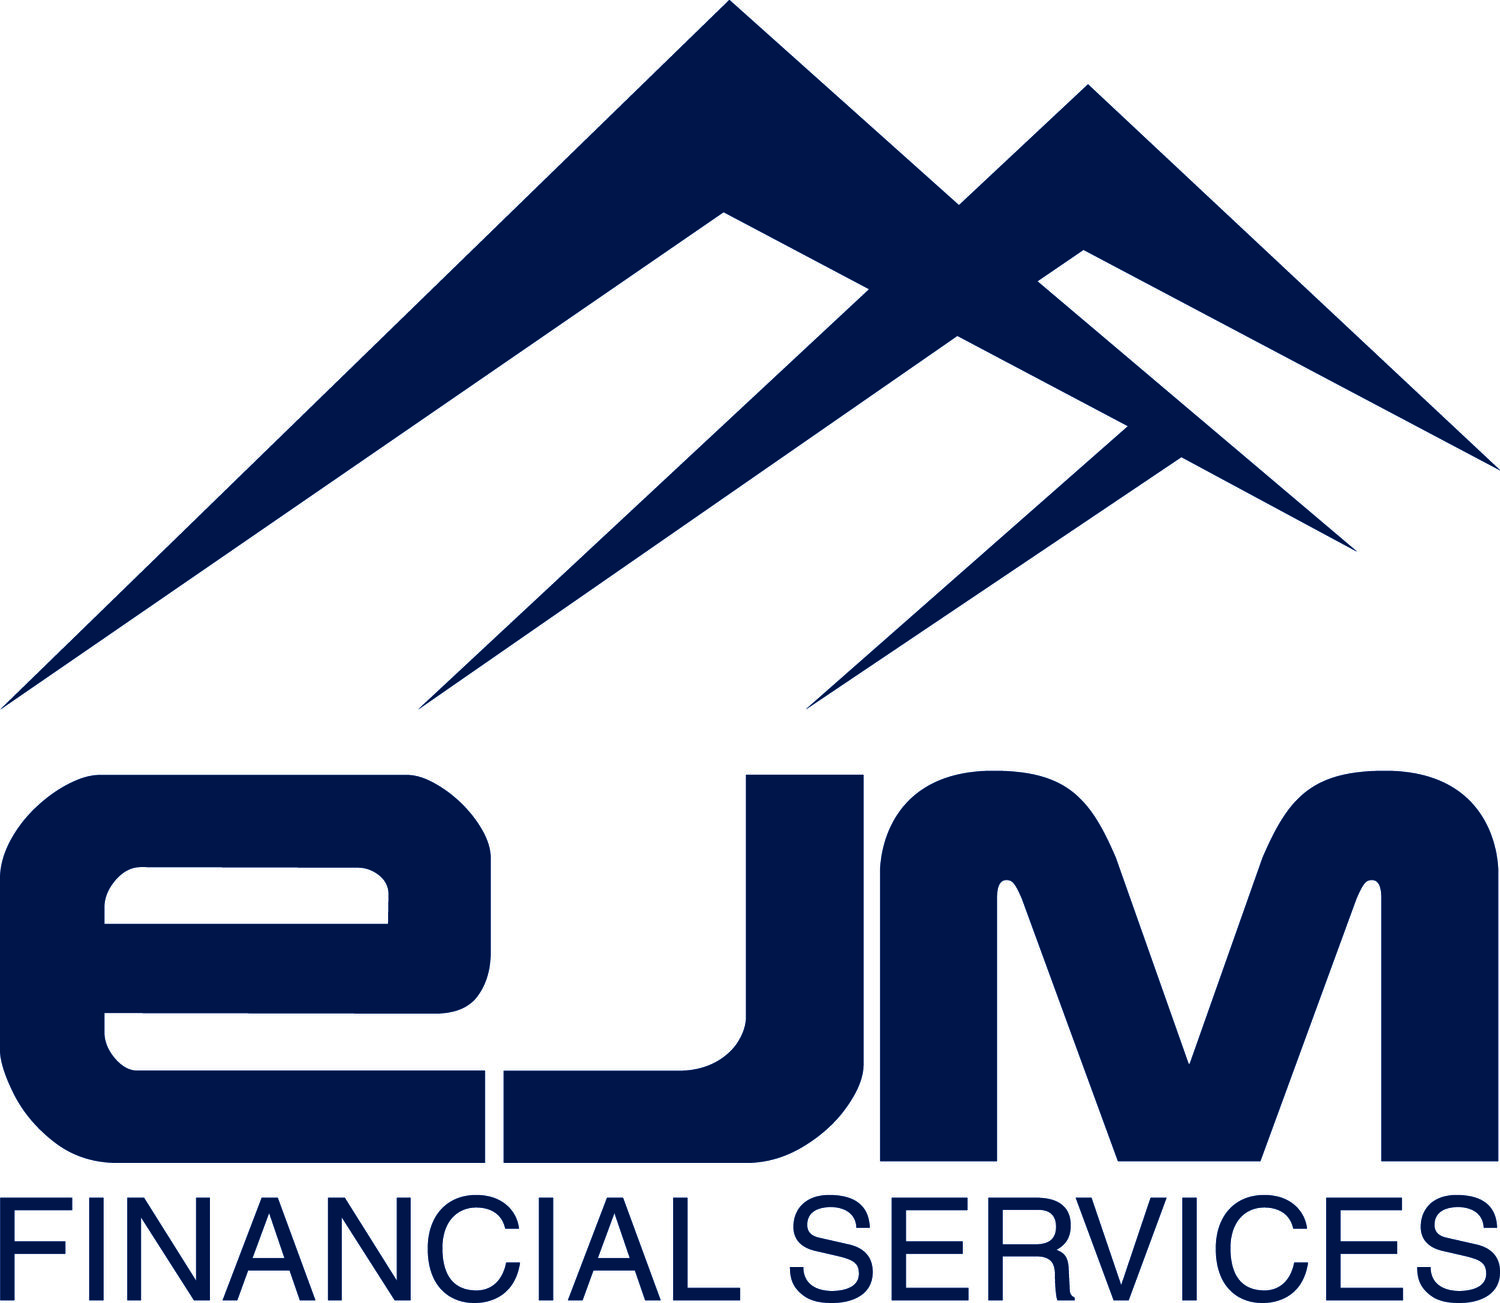 EJM Financial Services